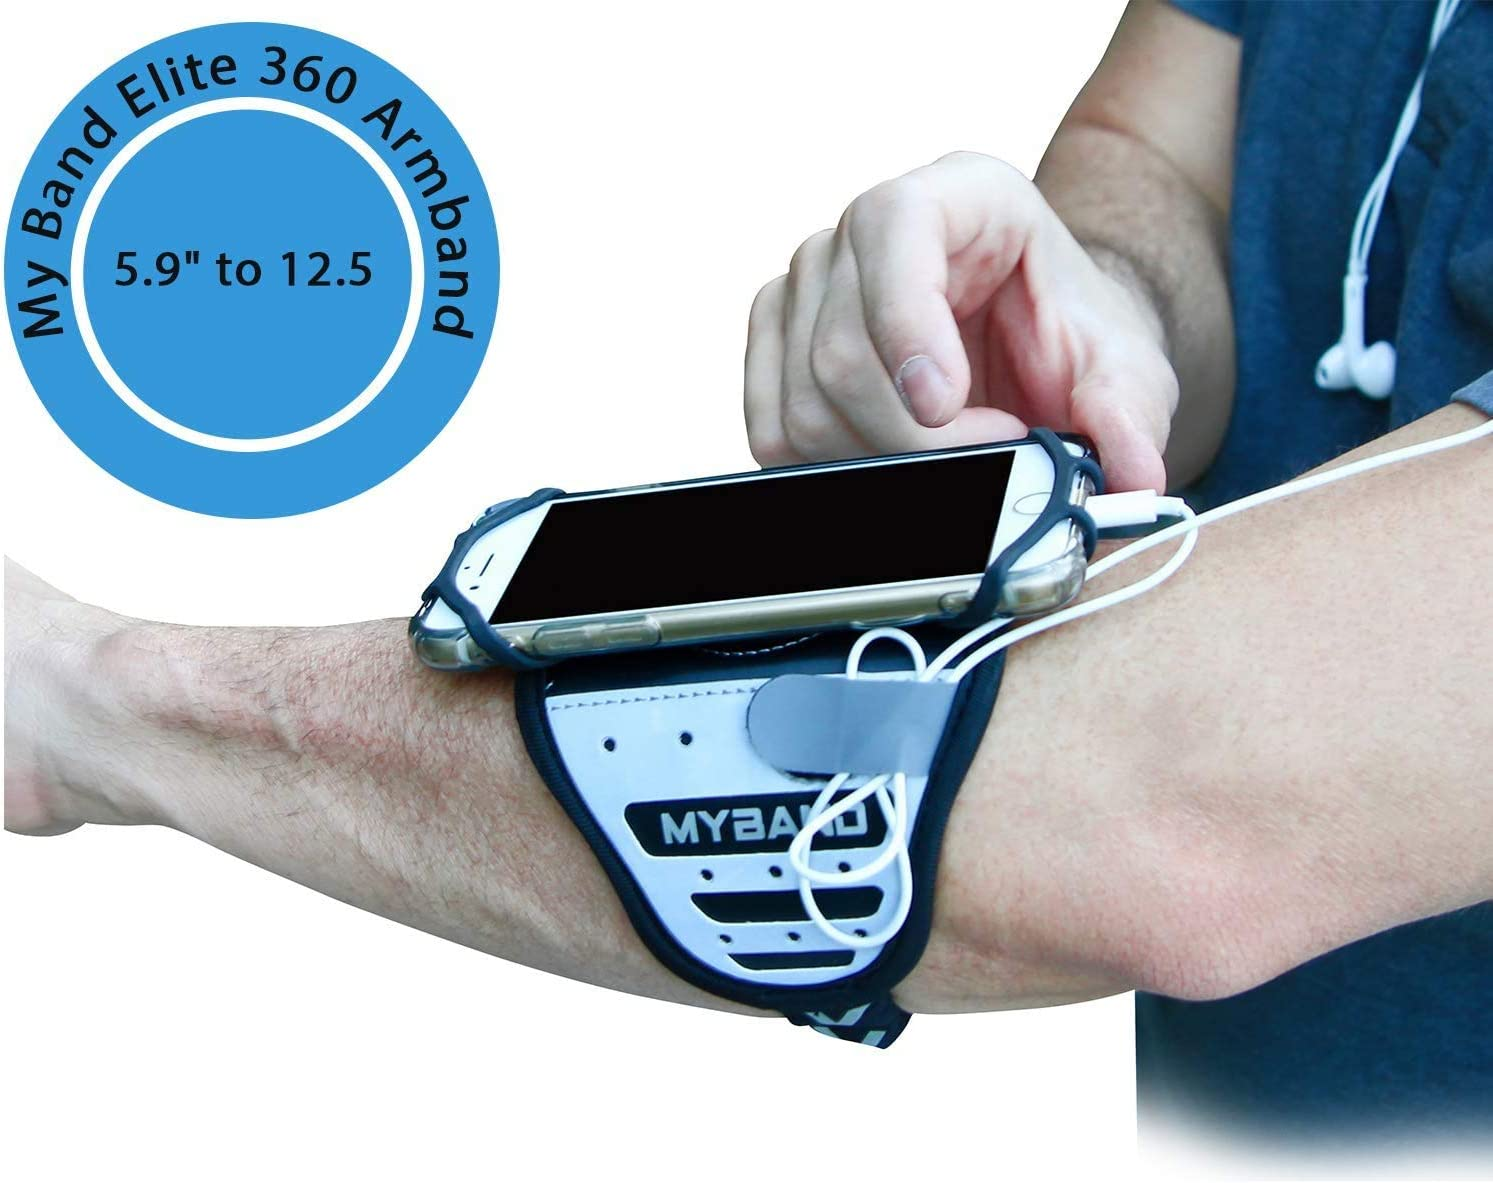 Fits 4-6.5 Inch Smartphones Reflective Surface MyBand Rotatable Phone Armband Workout Phone Holder 360/° Rotatable Armband 5.9-12.5 Inch Forearm Adjustable Fit Hidden Security Pocket